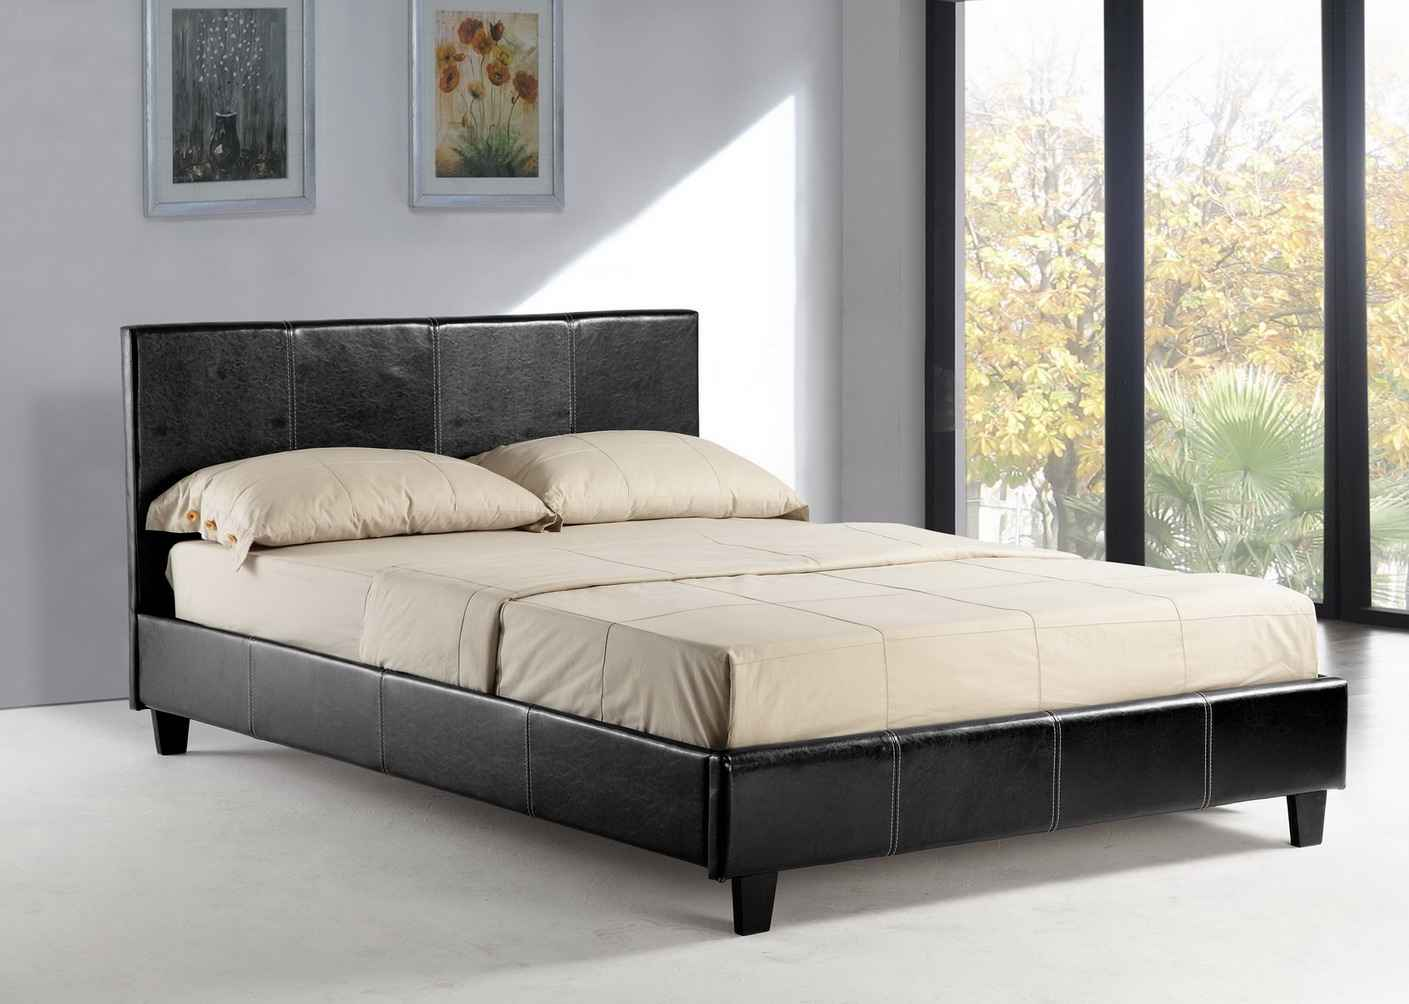 Ikea feel the home Cheapest queen mattress